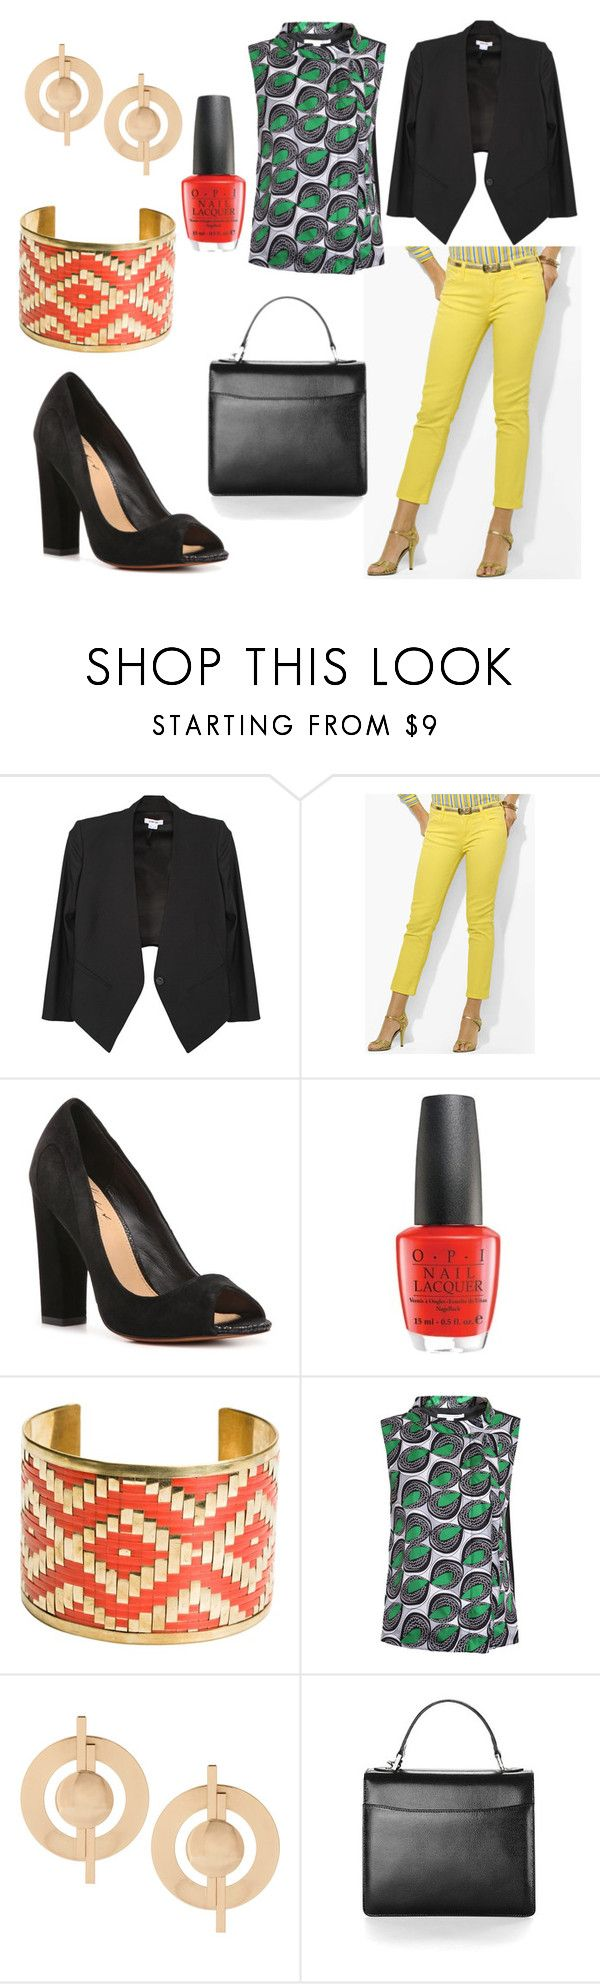 Semi-serious BSp FG by skugge on Polyvore featuring мода, Diane Von Furstenberg, Helmut Lang, Lauren Ralph Lauren, Mark + James by Badgley Mischka, Aspinal of London, Zad, ASOS and OPI